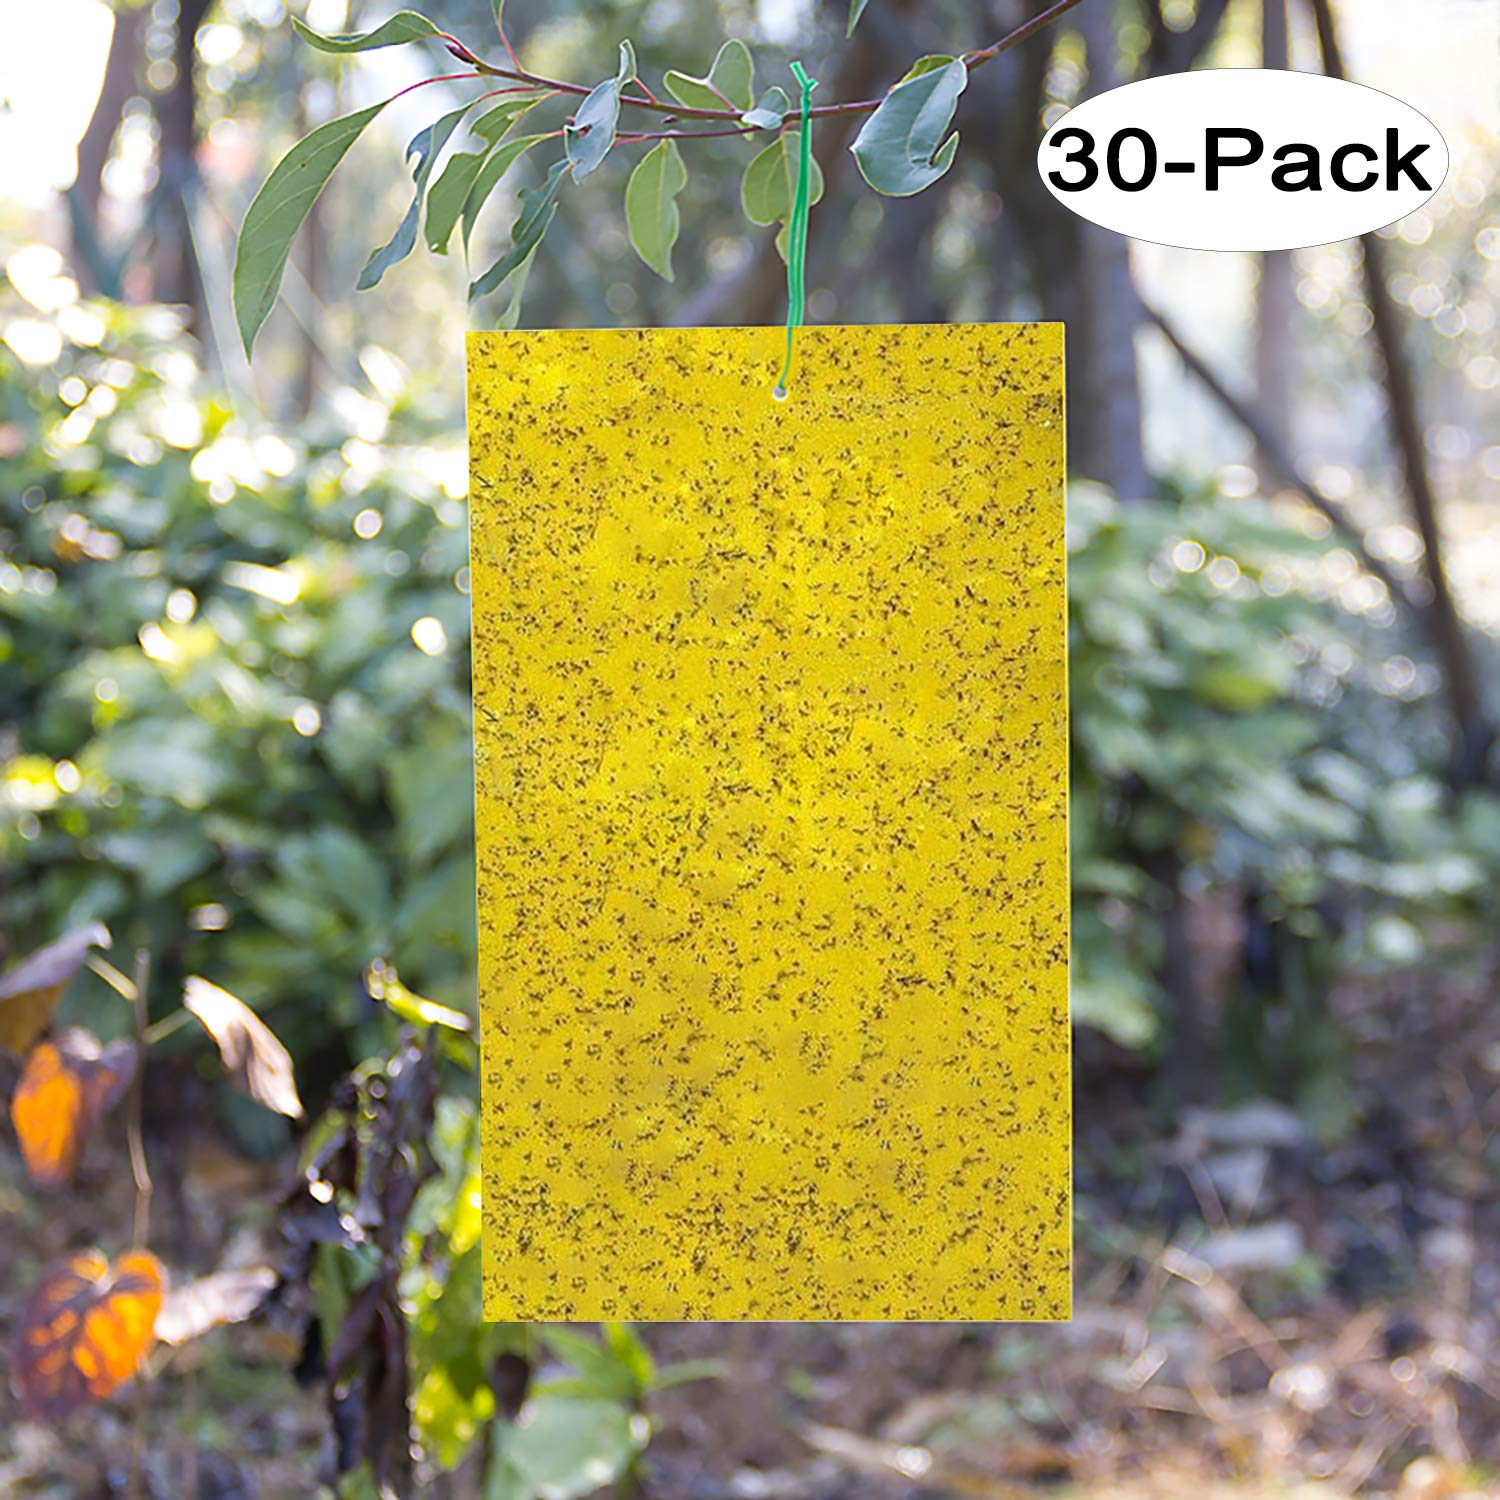 Kensizer 30-Pack Dual-Sided Yellow Sticky Traps for Flying Plant Insect Like Fungus Gnats, Whiteflies, Aphids, Leaf Miners, Thrips, Other Flying Plant Insects - 6x8 Inches, Twist Ties Included by Kensizer